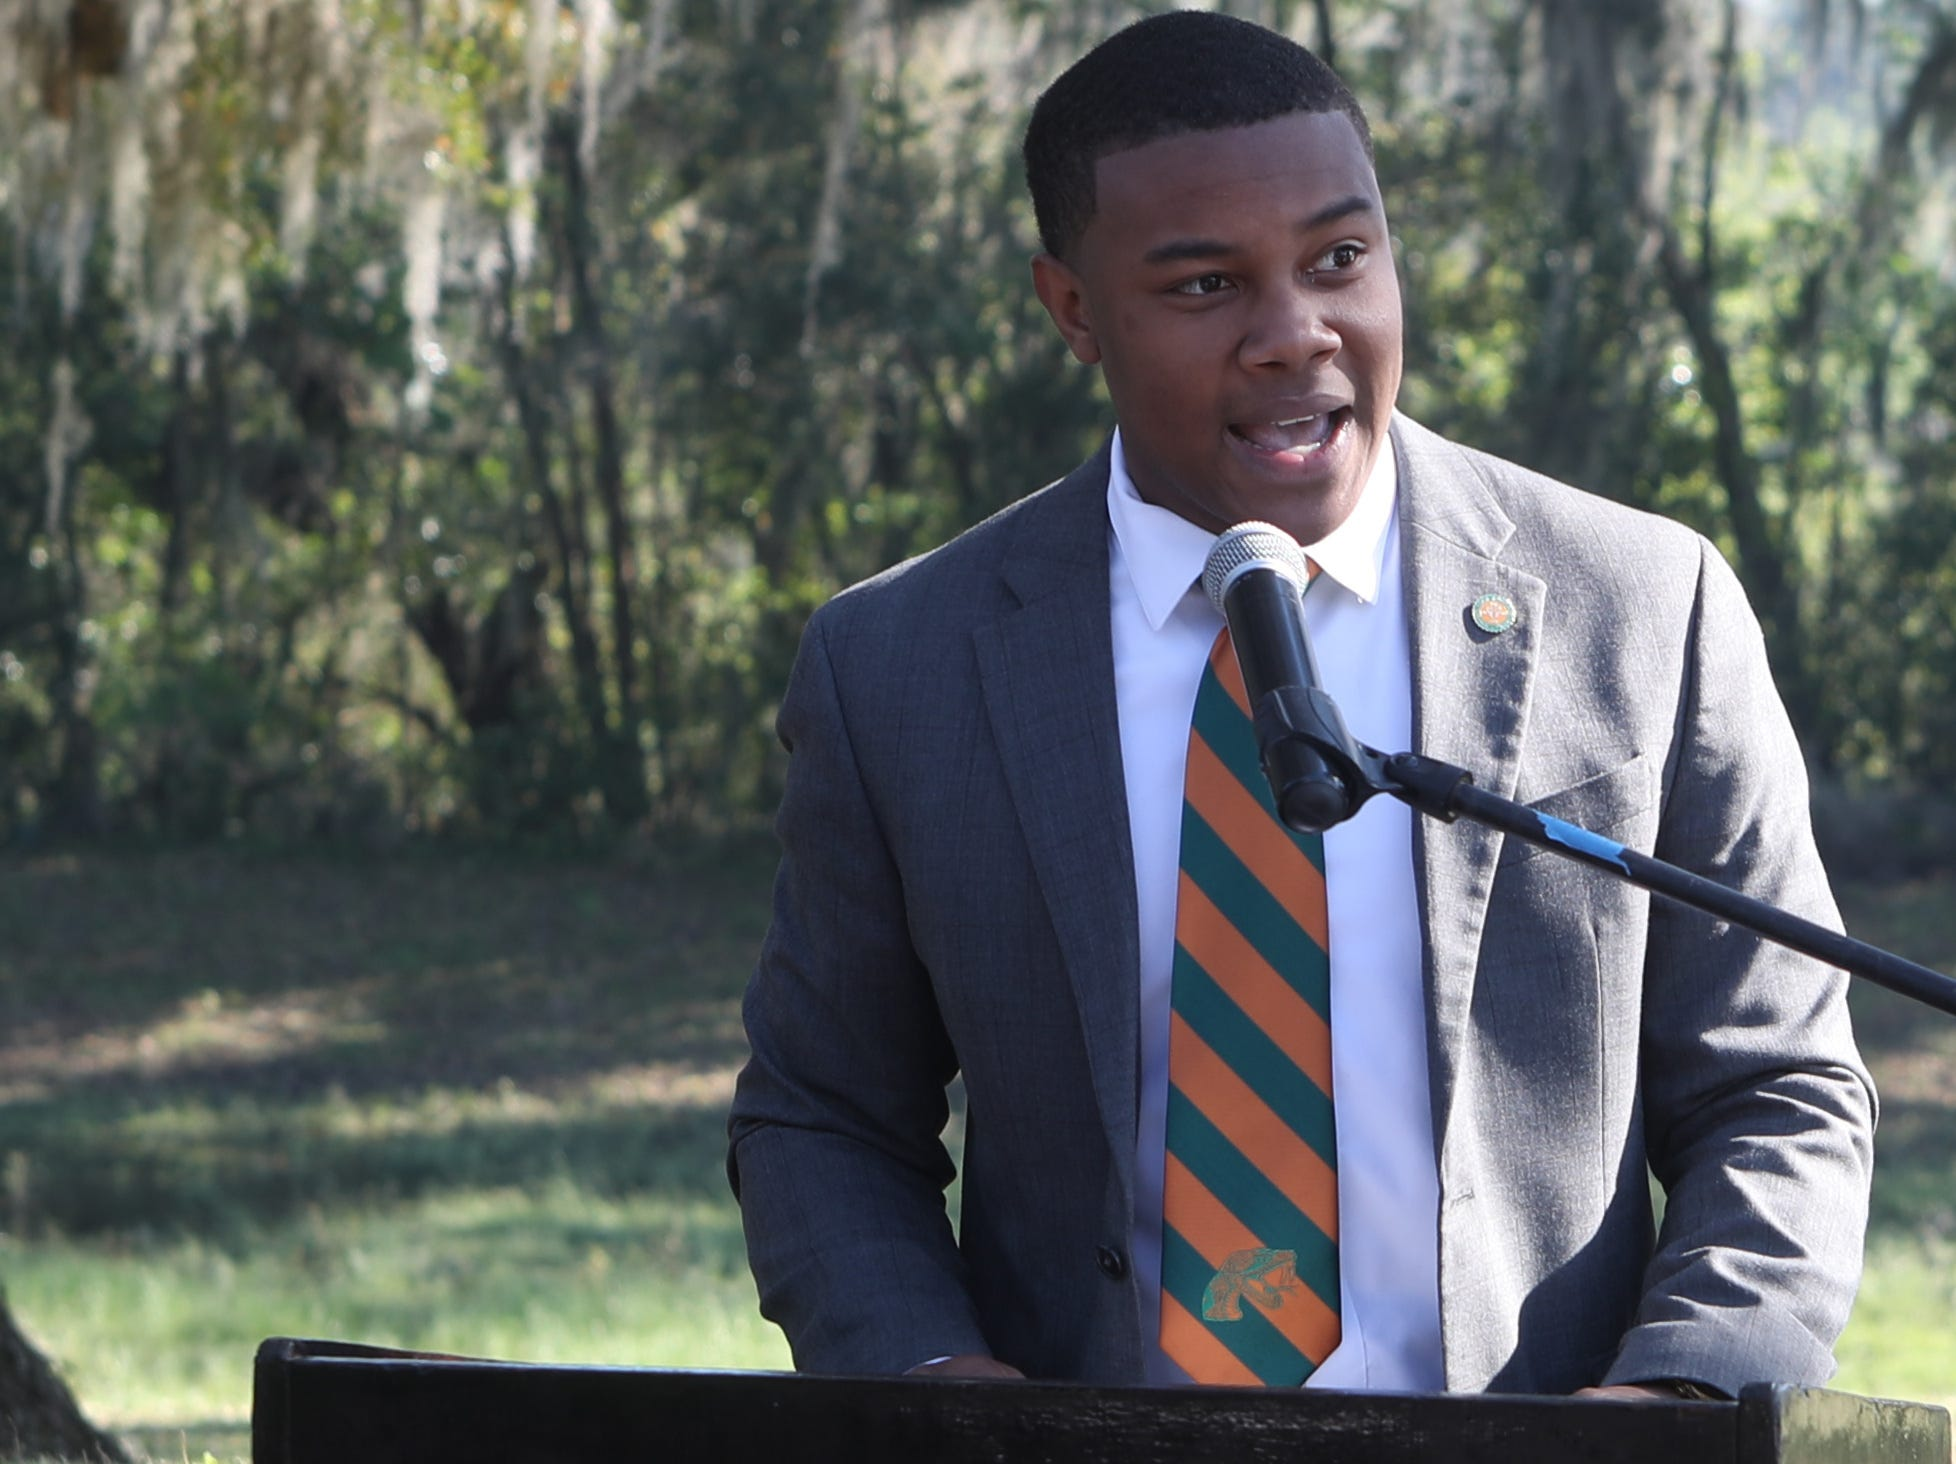 Trustee and President of the Florida A&M Student Government Association David Jackson III speaks during a groundbreaking celebration for a new residence hall on the Florida A&M campus Wednesday, March 6, 2019.